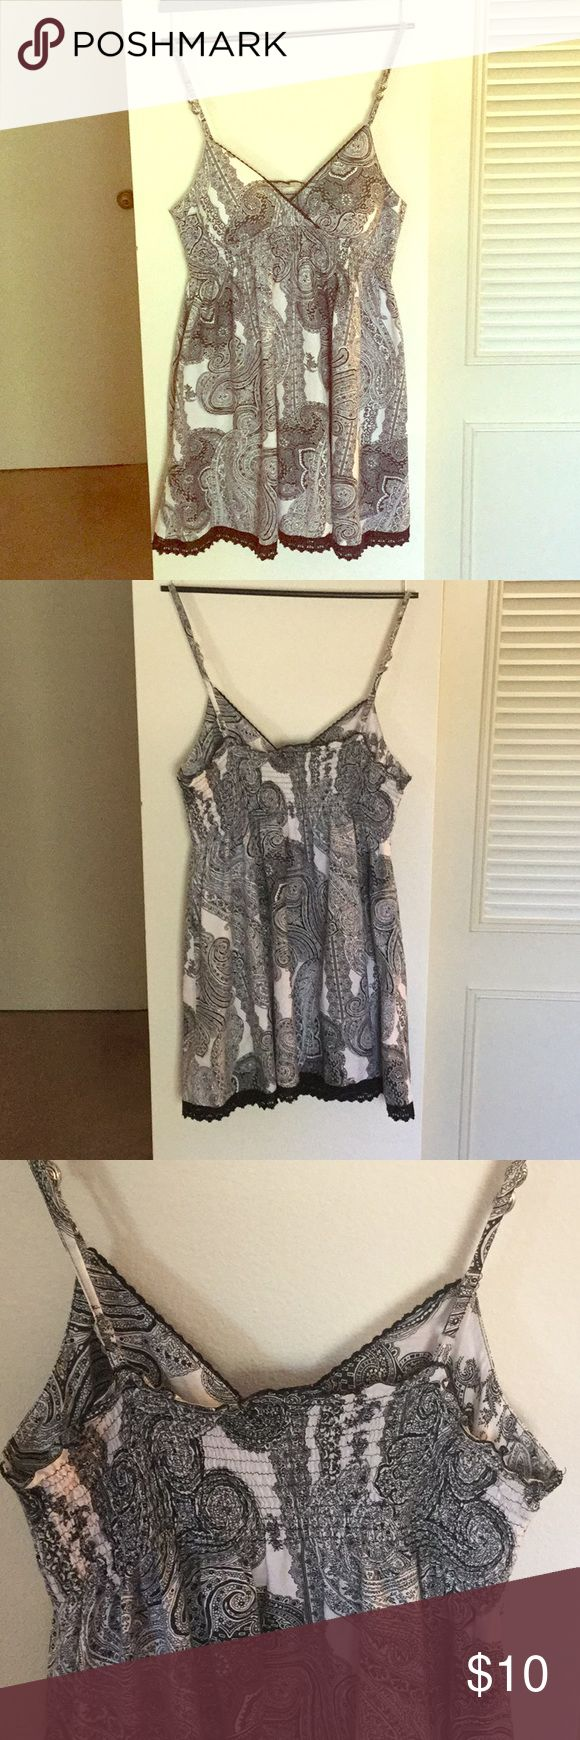 Summer dress 👗 Beautiful easy light spring dress. Size large. Cut tags off. Not sure brand . Lightly padded built in bra top . Tribal bead accents;) black and white paisley print. Throw on and go to the beach ;) Dresses Midi